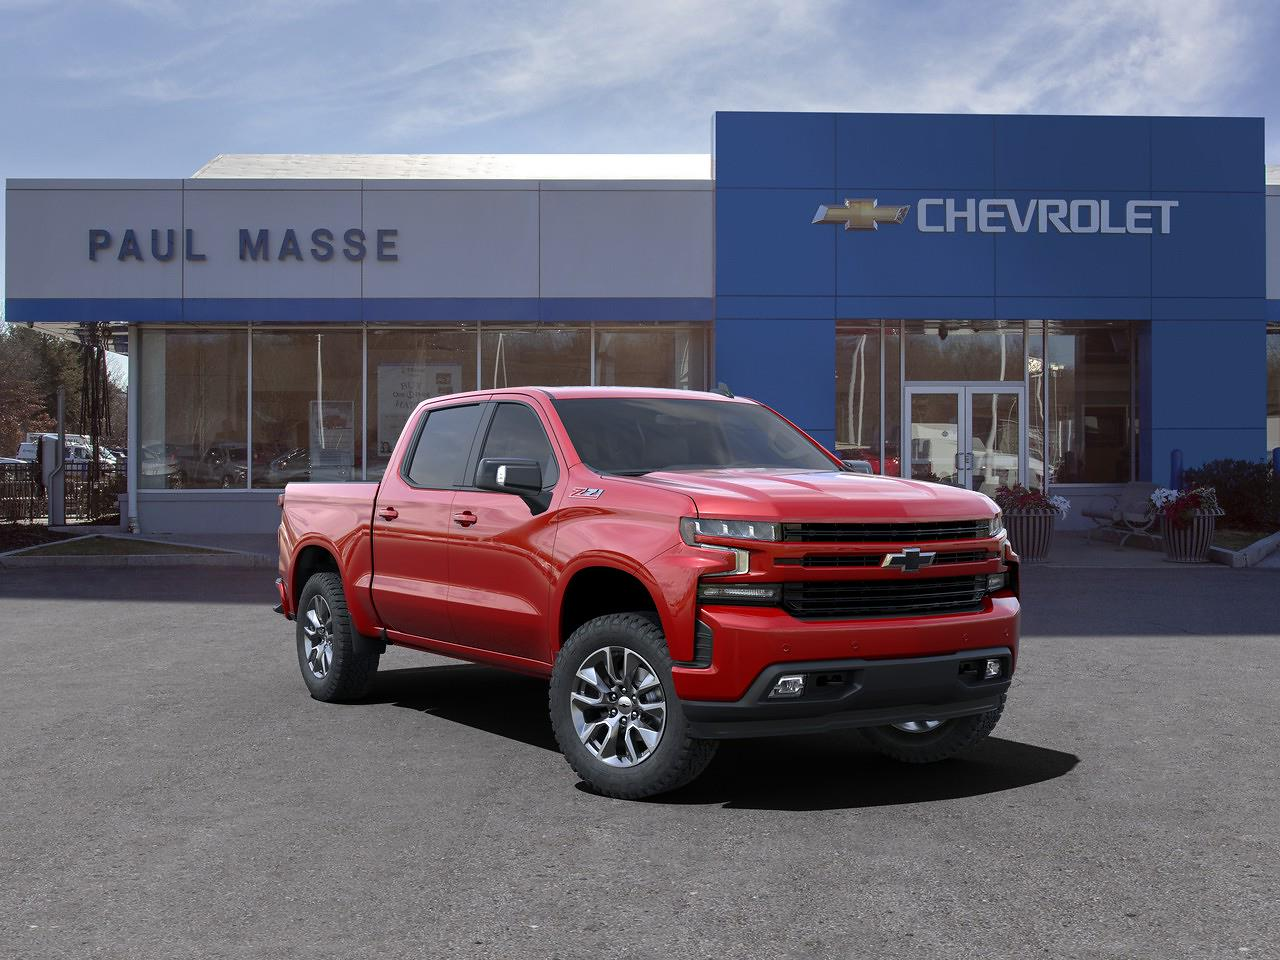 2021 Chevrolet Silverado 1500 Crew Cab 4x4, Pickup #CK1400 - photo 1